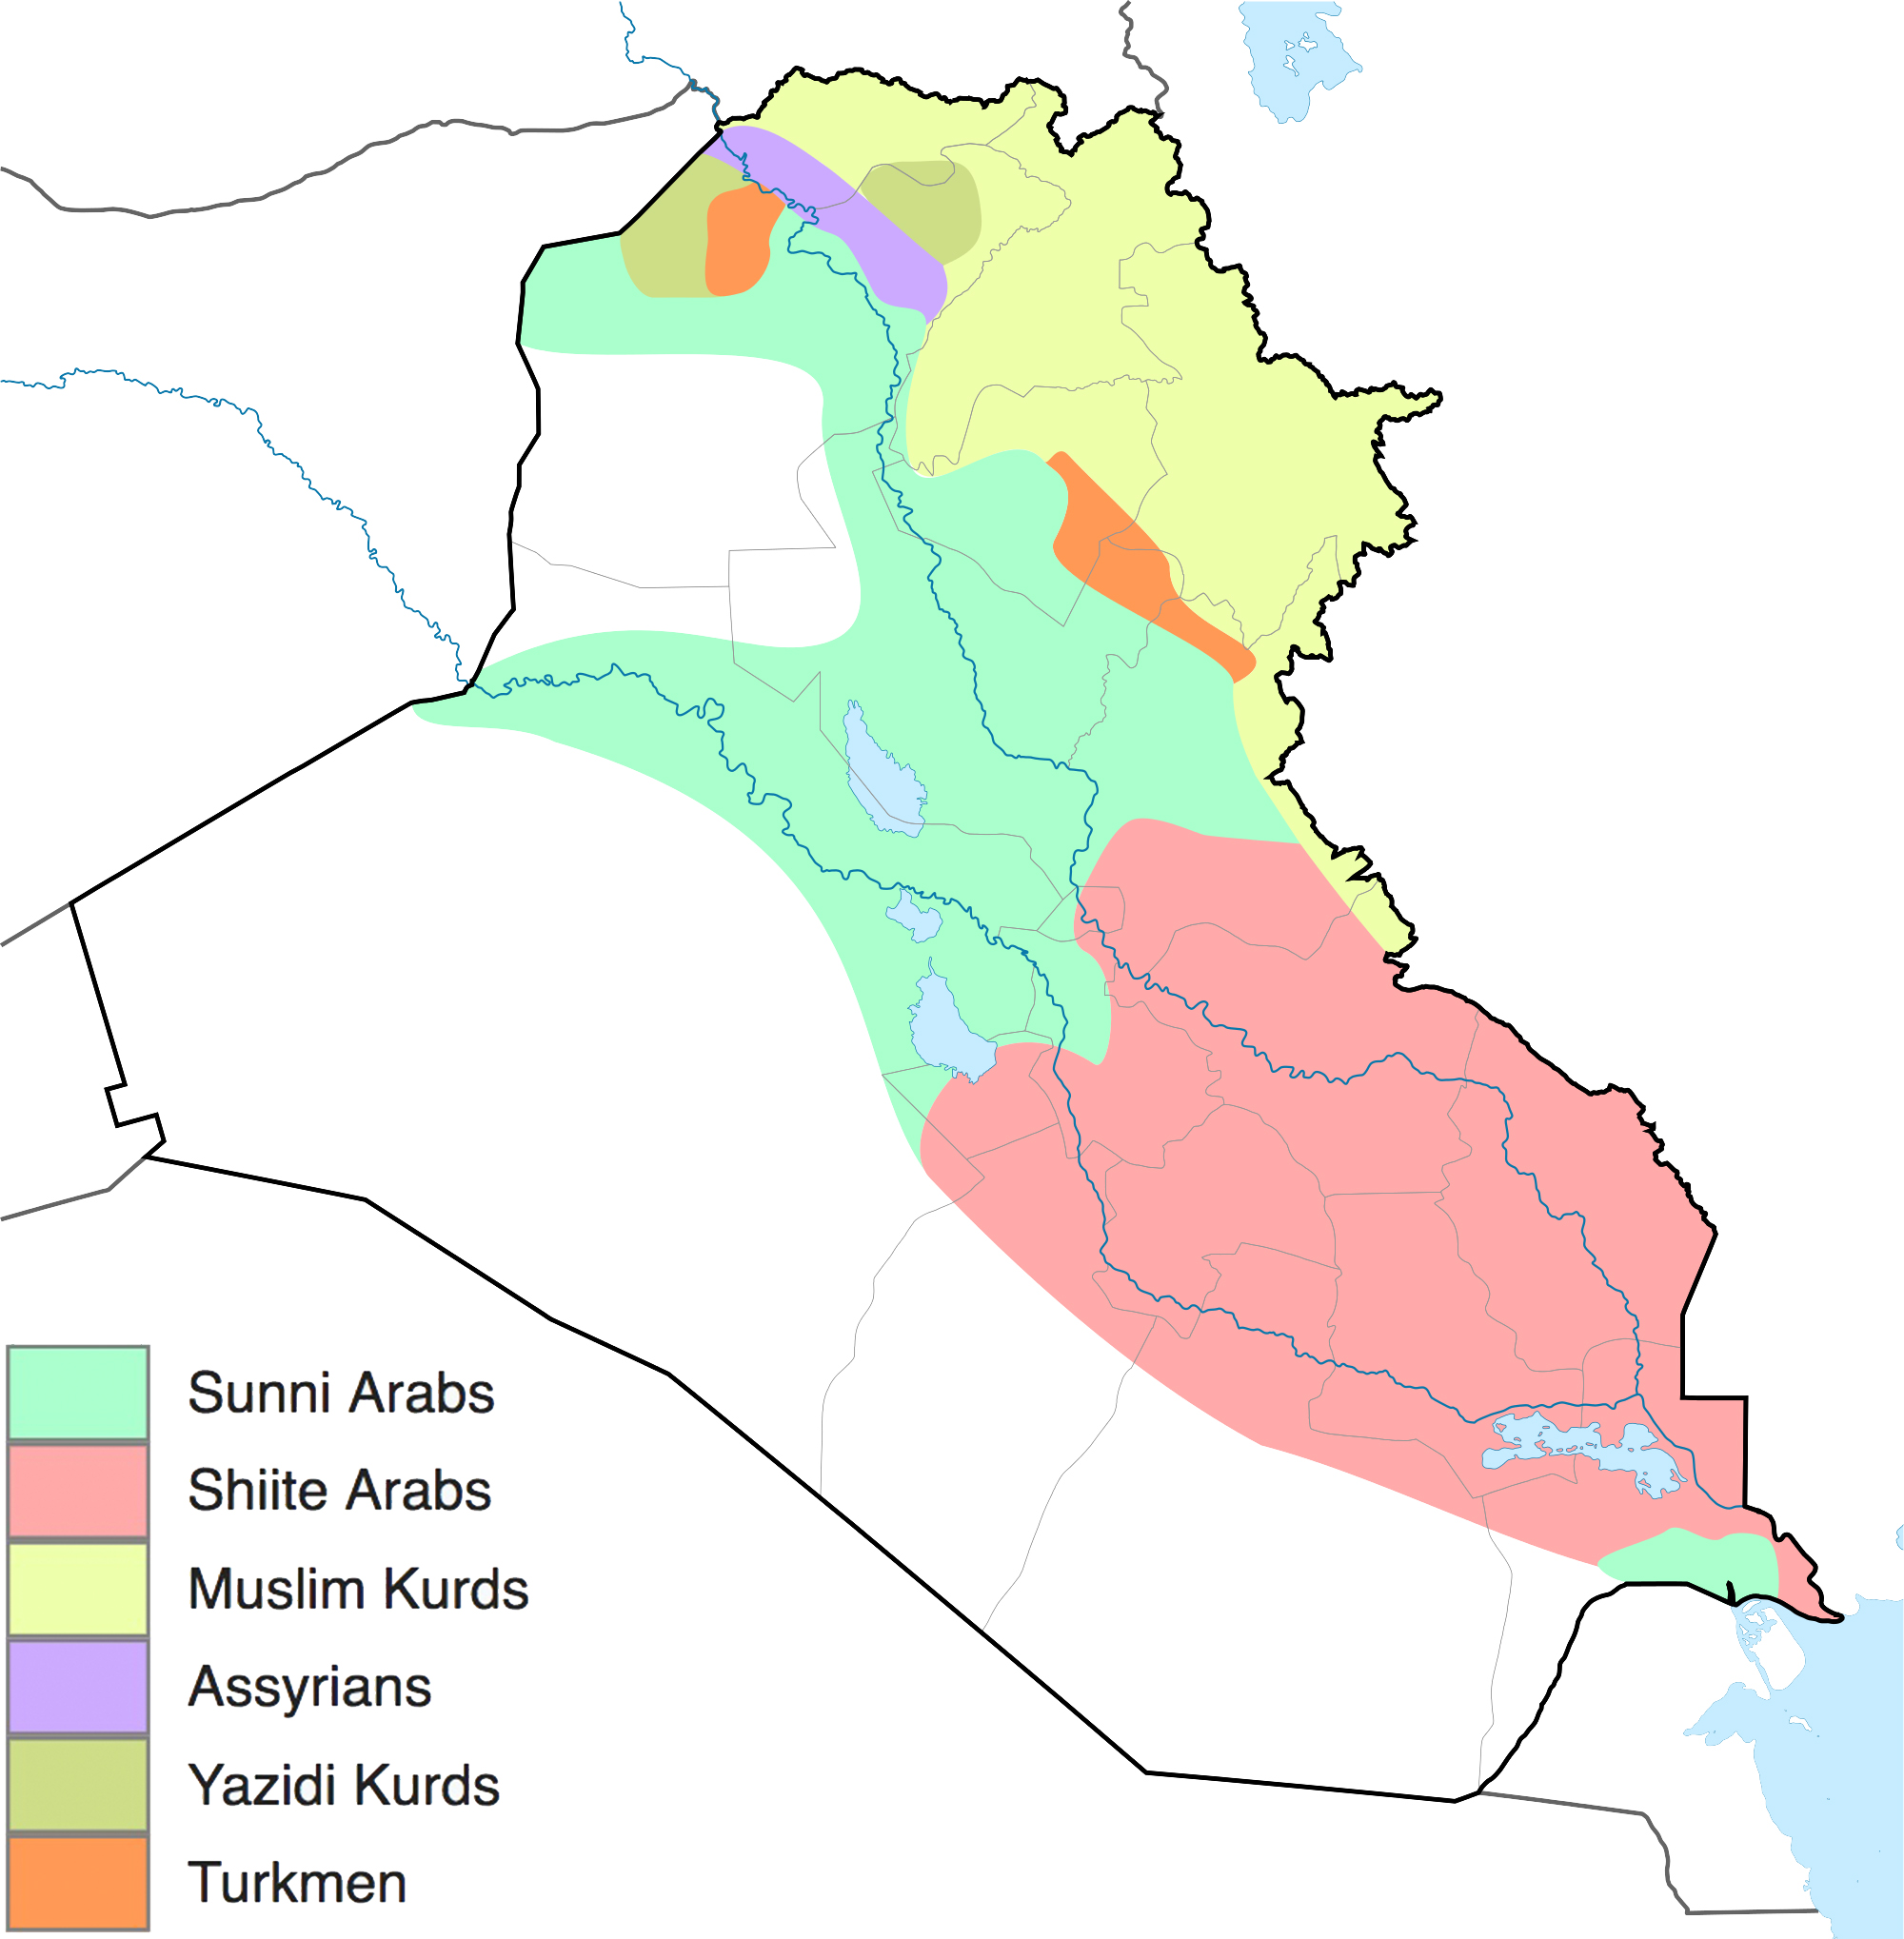 Ethnoreligious map of Iraq